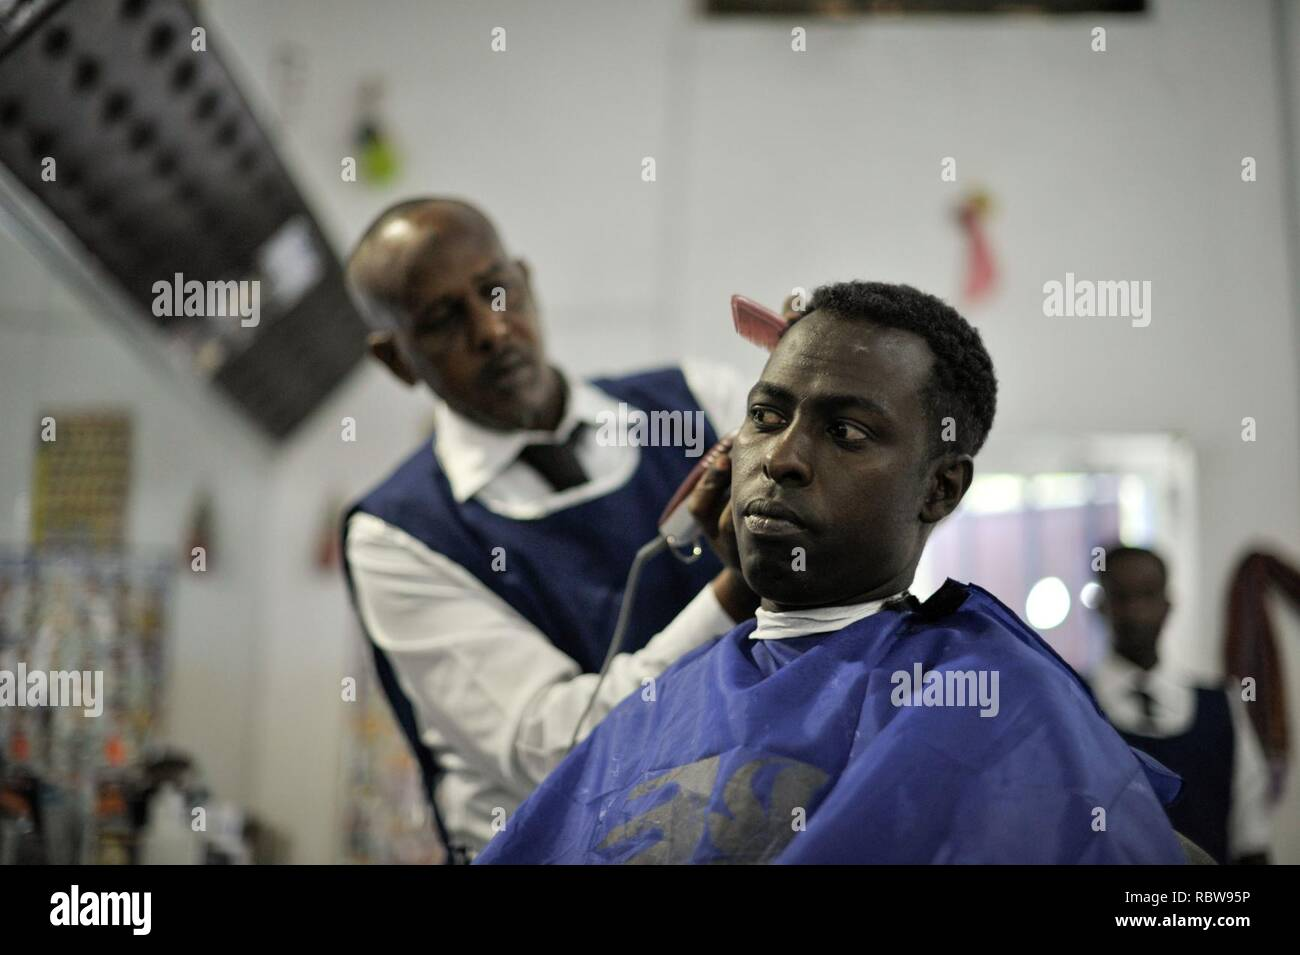 A Hairdresser Gives A Haircut At Abdulqadir Abduls Newly Opened